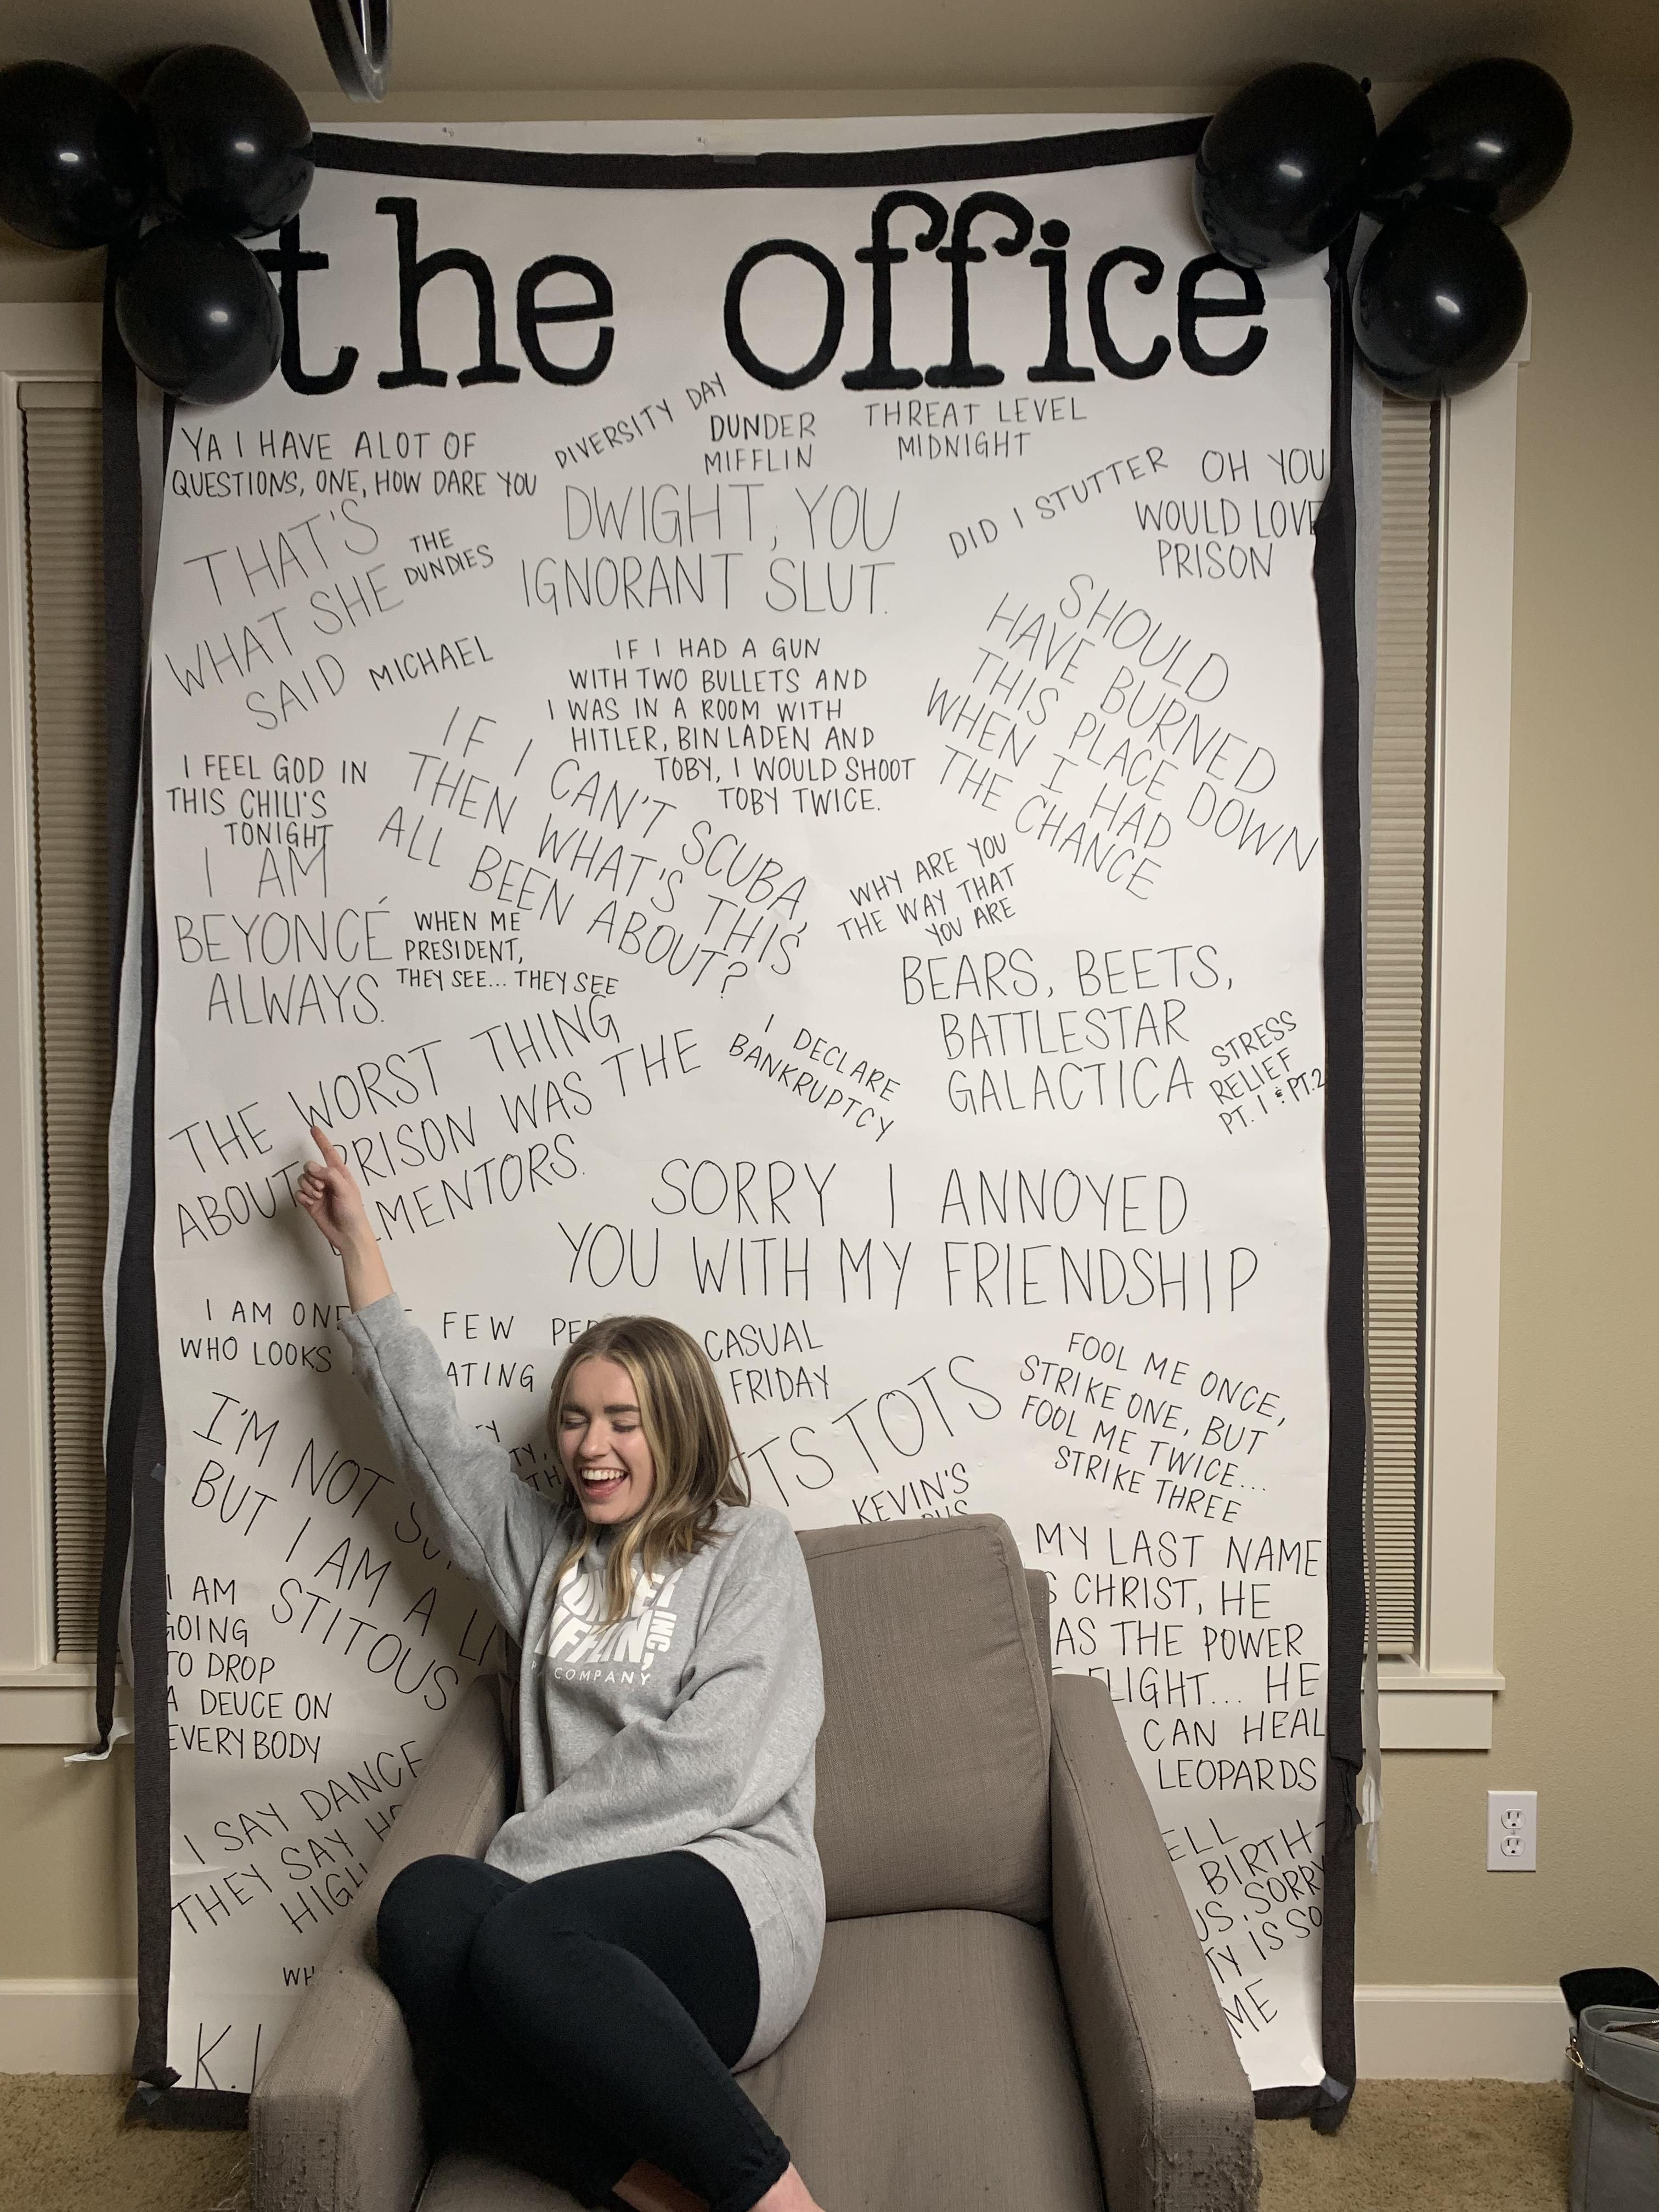 Threw my girlfriend an office surprise party, themes song with video coming soon.